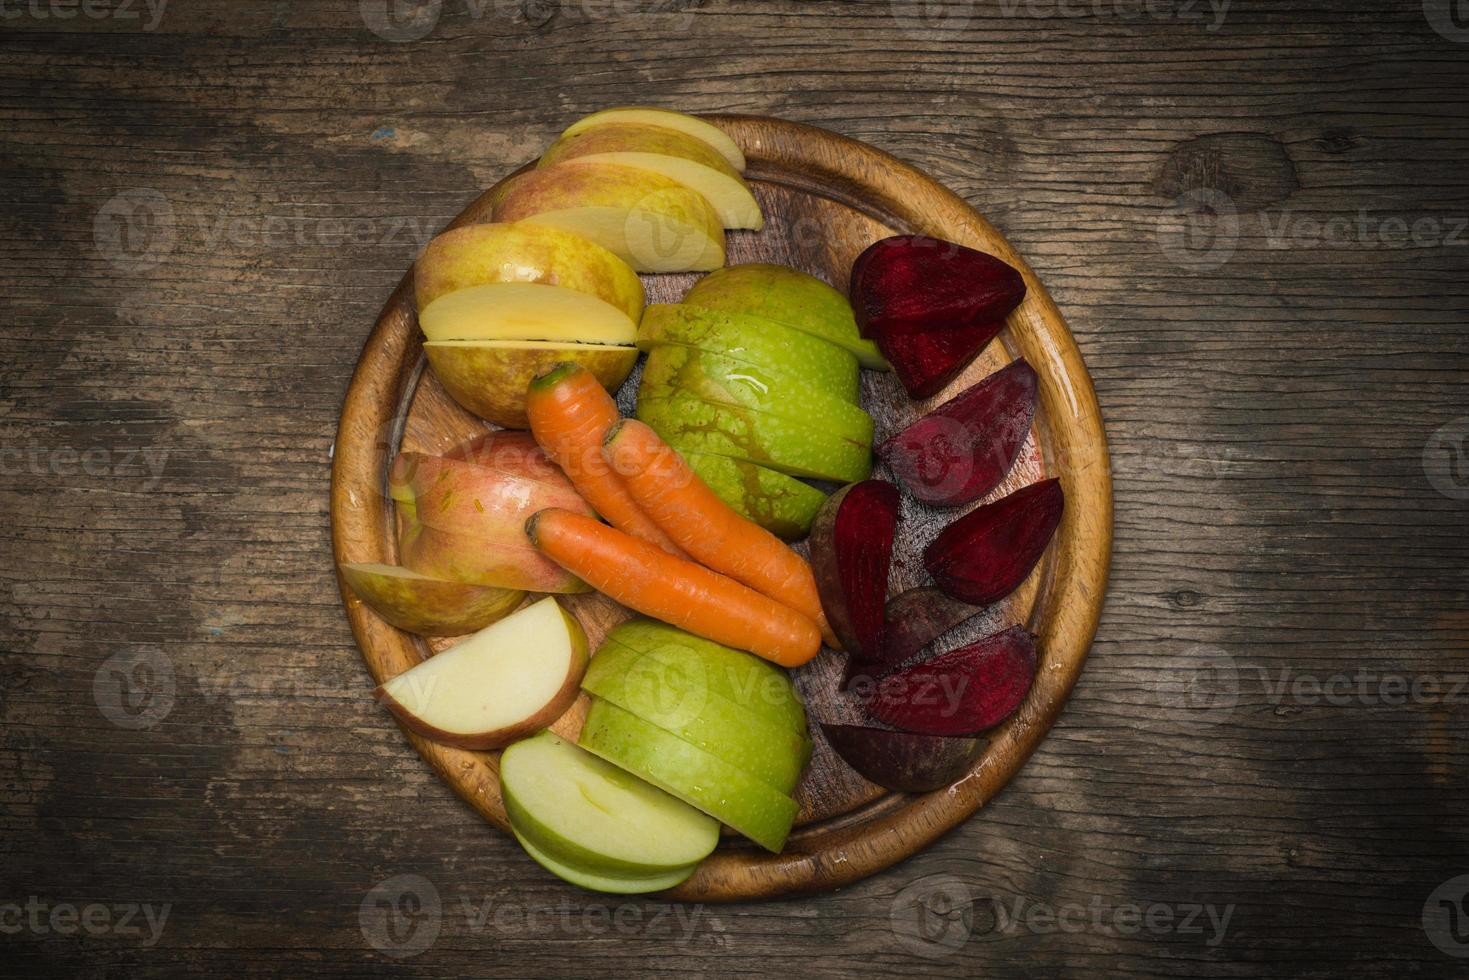 Beetroot, carrots and apple photo